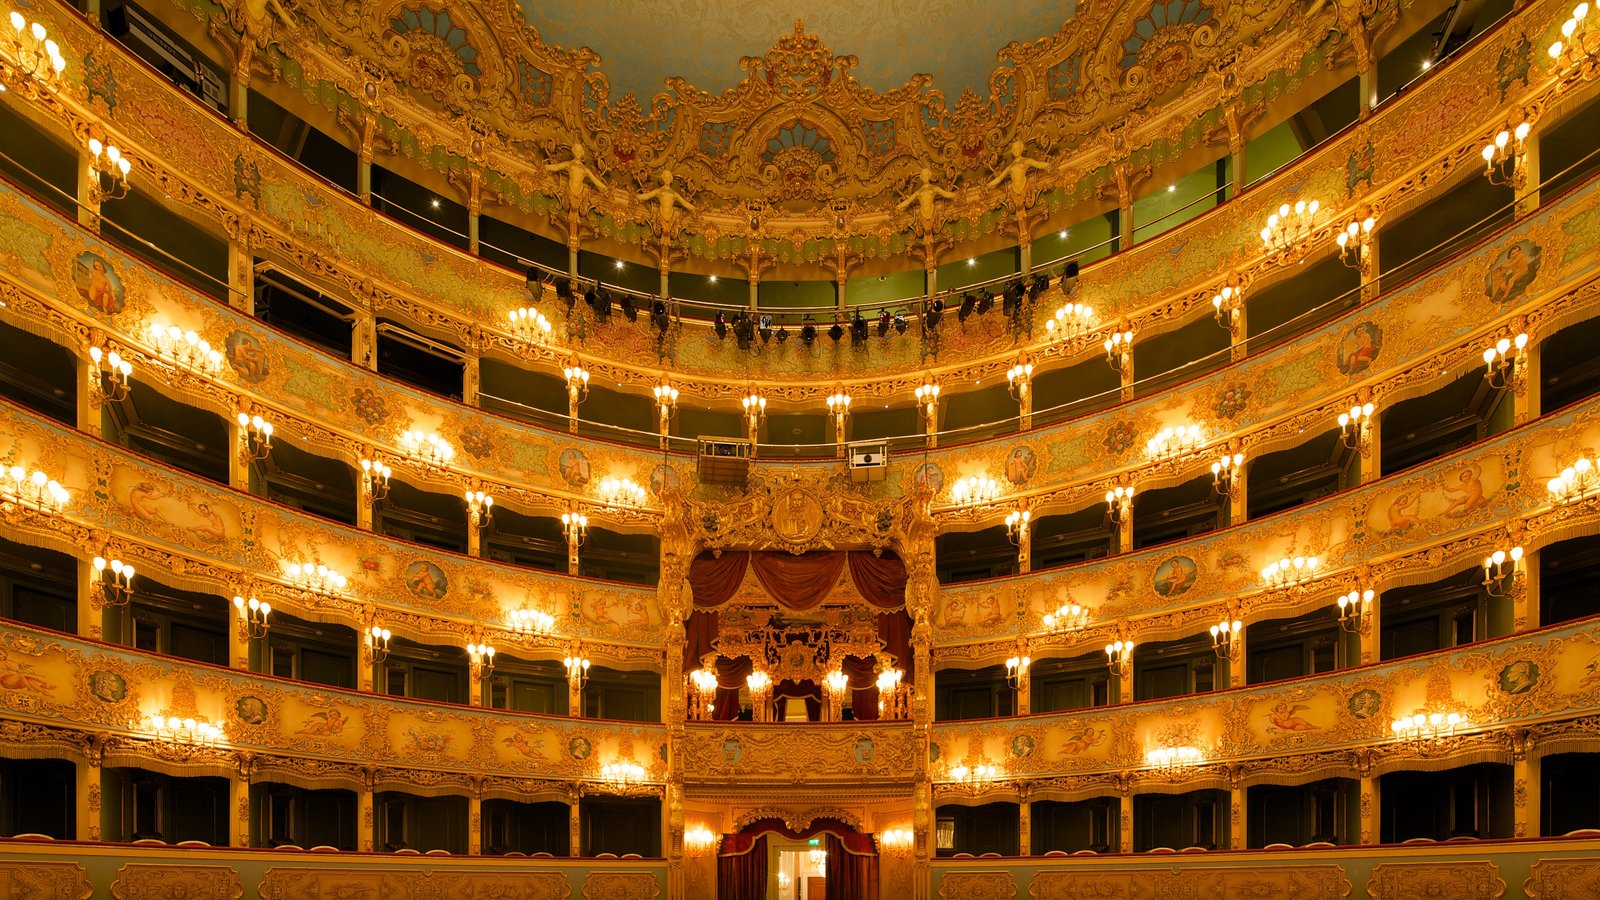 La Fenice Opera House featuring heritage architecture and interior views